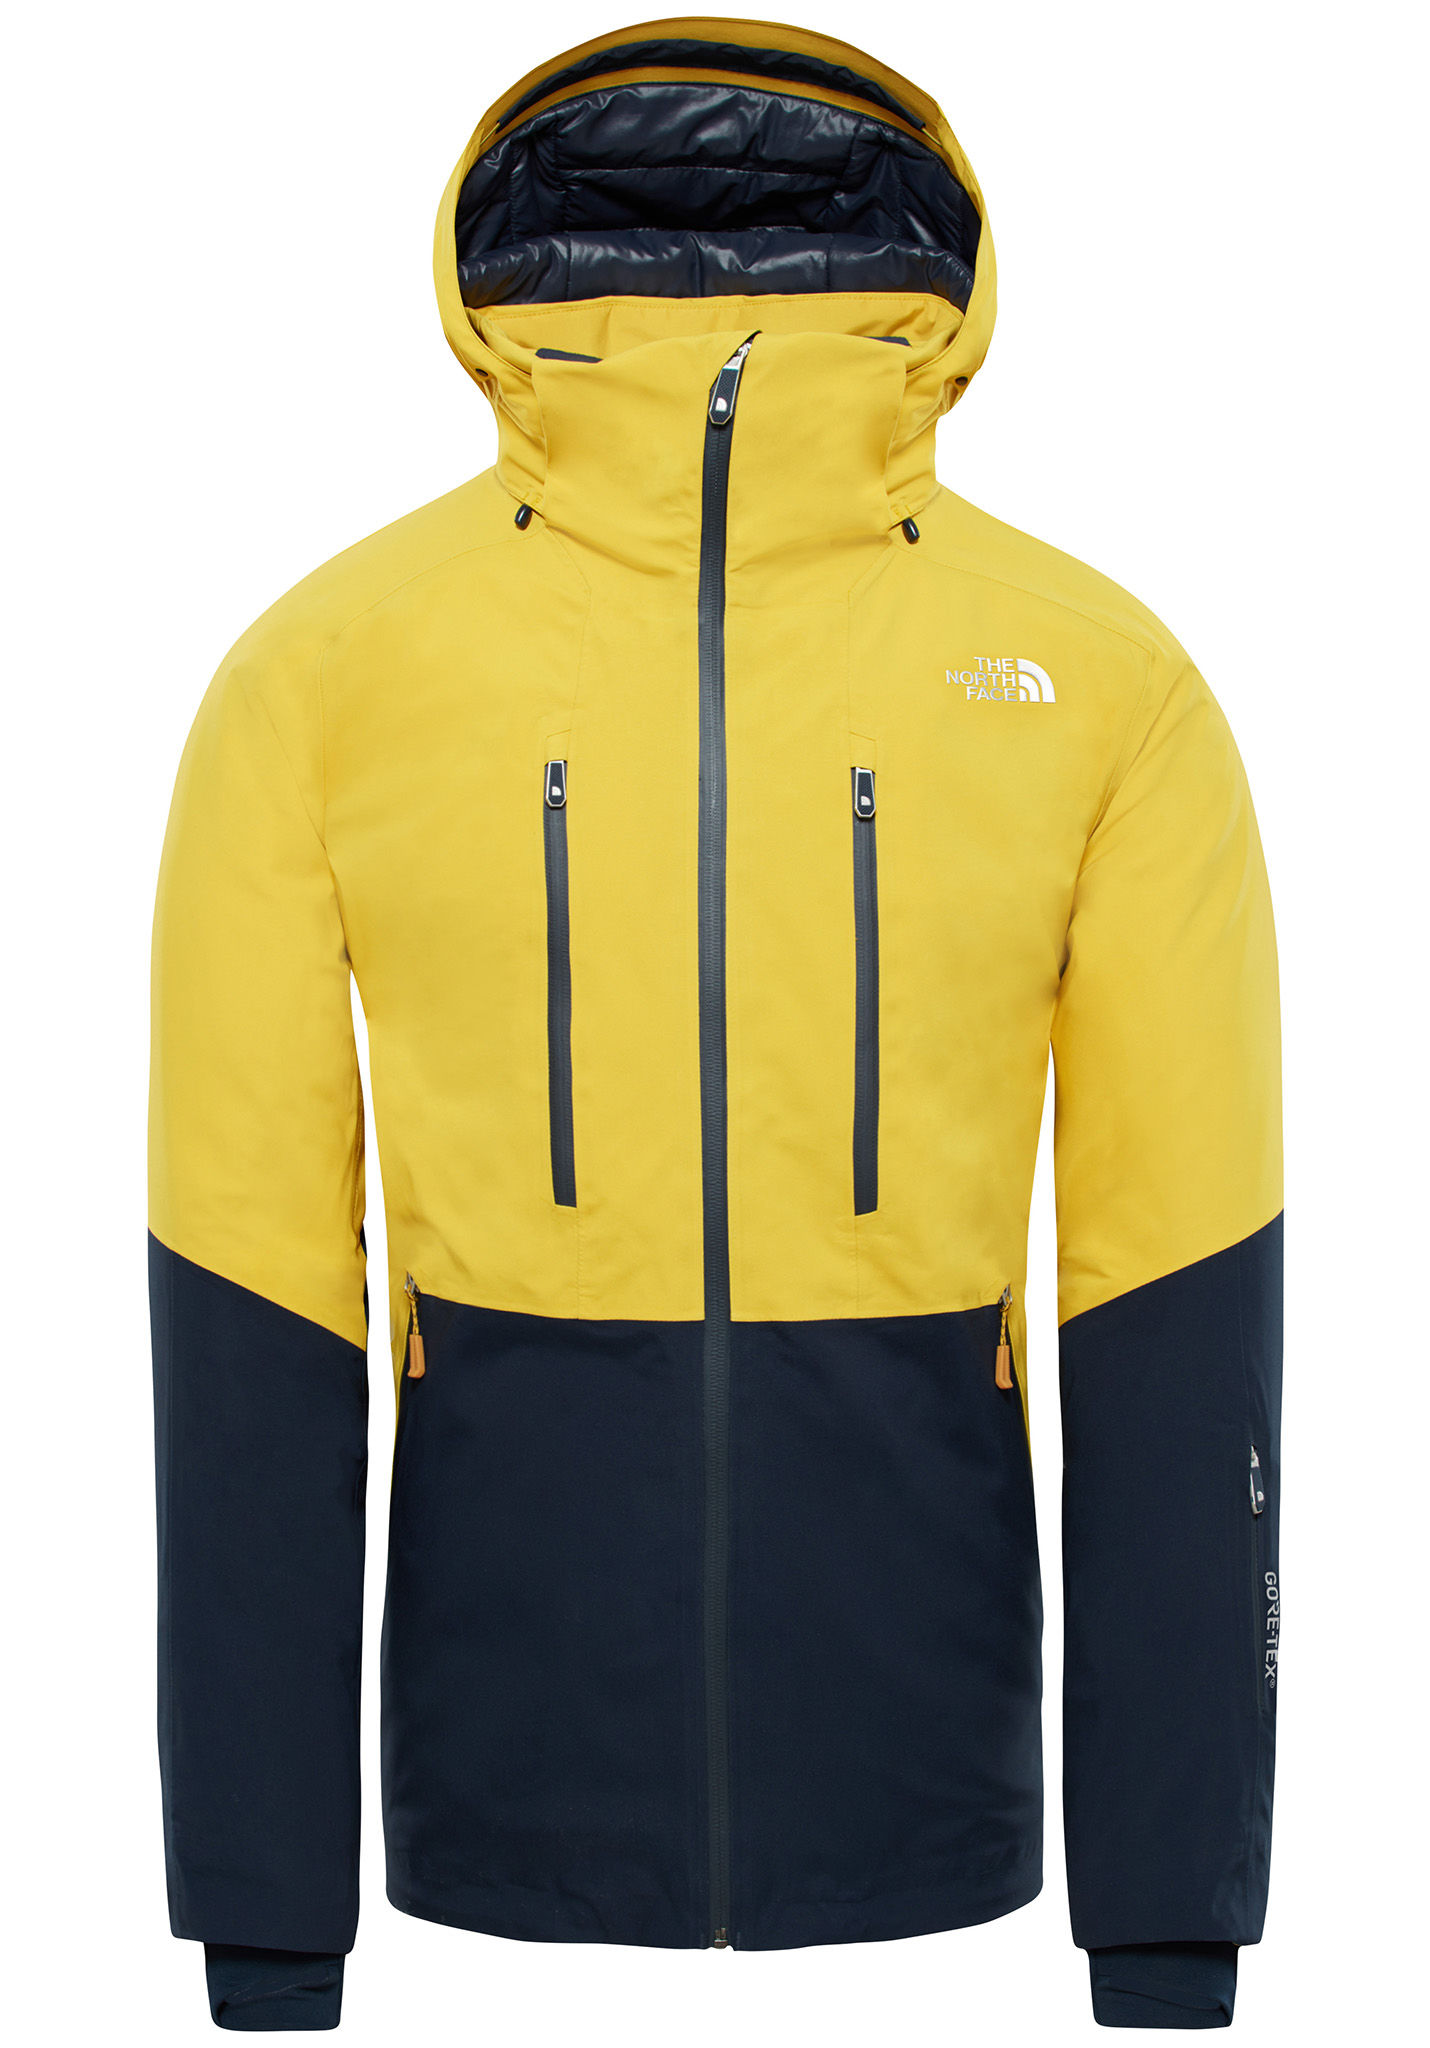 THE NORTH FACE Anonym - Vestes de ski pour